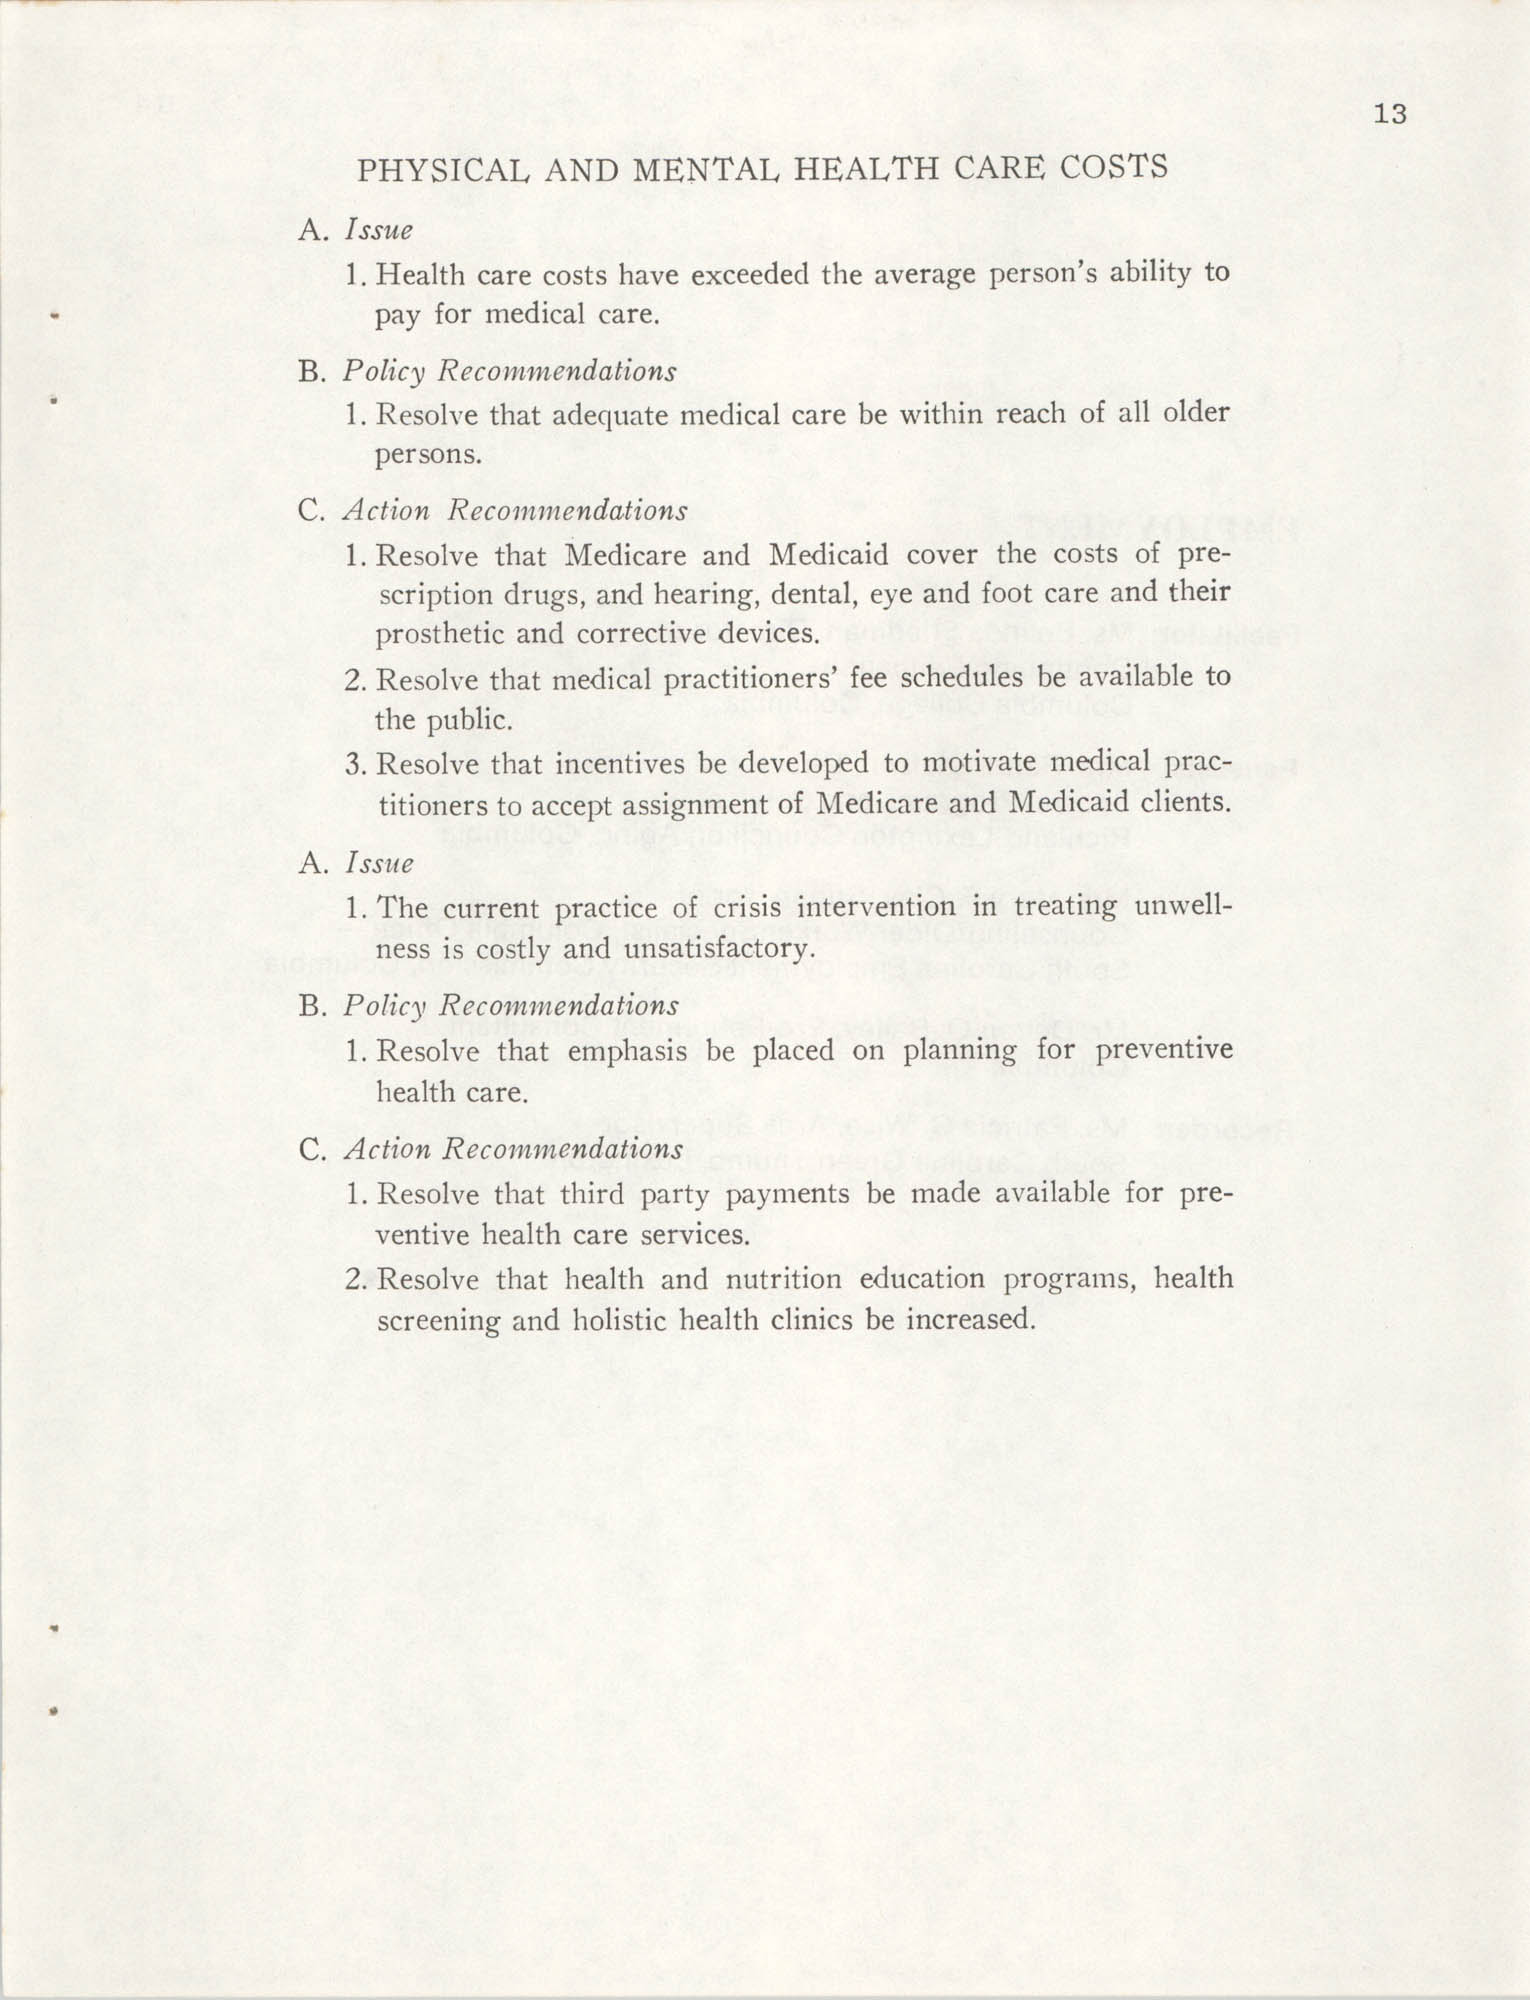 South Carolina Governor's White House Conference on Aging Proceedings, 1981, Page 13